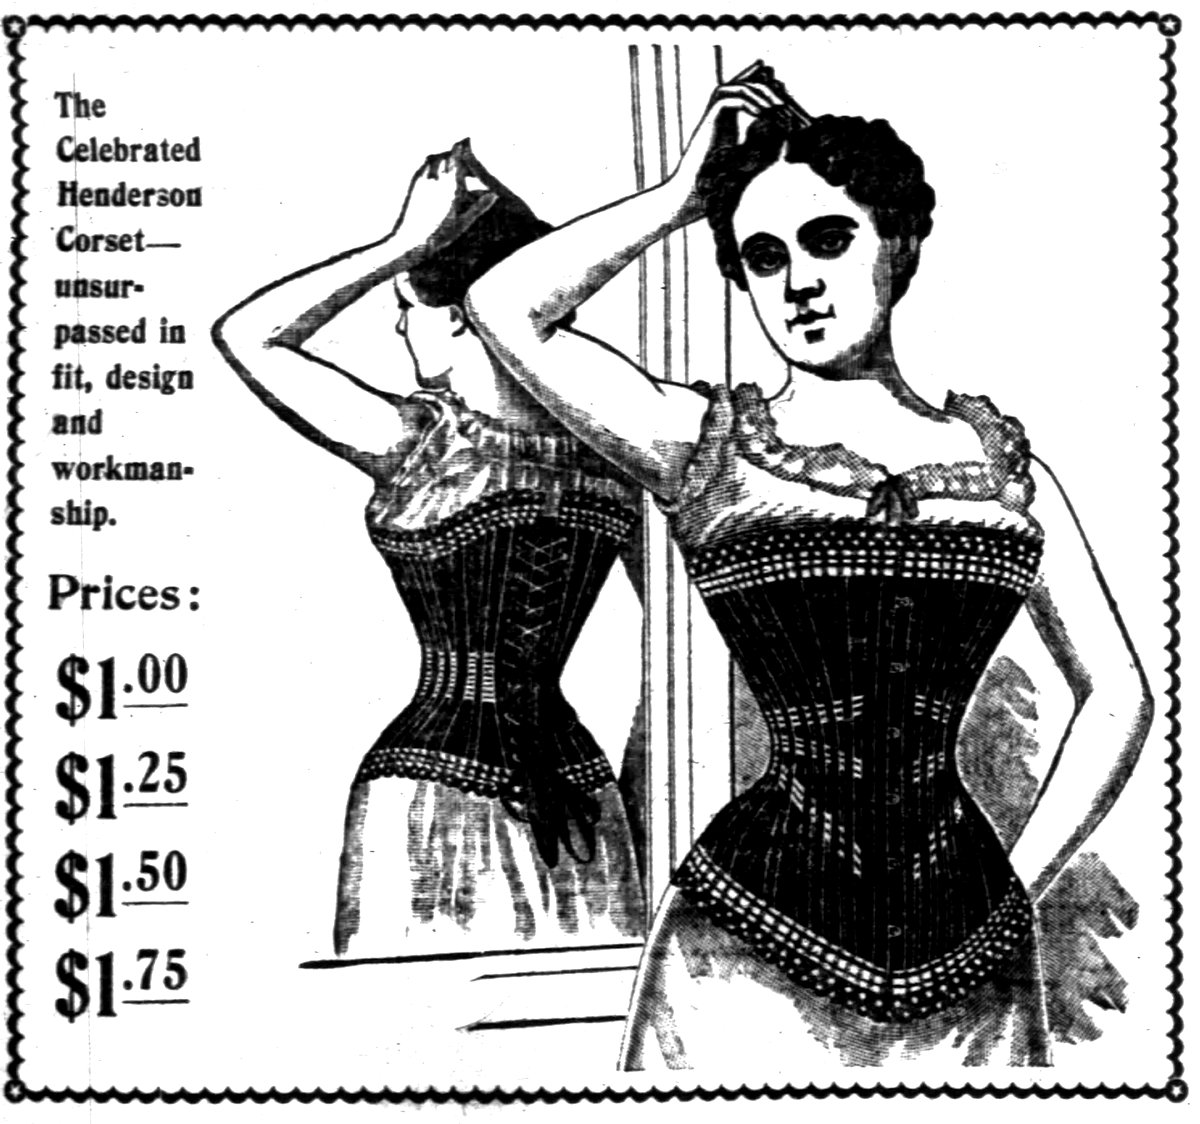 Antique corsets from April 1898 (4)